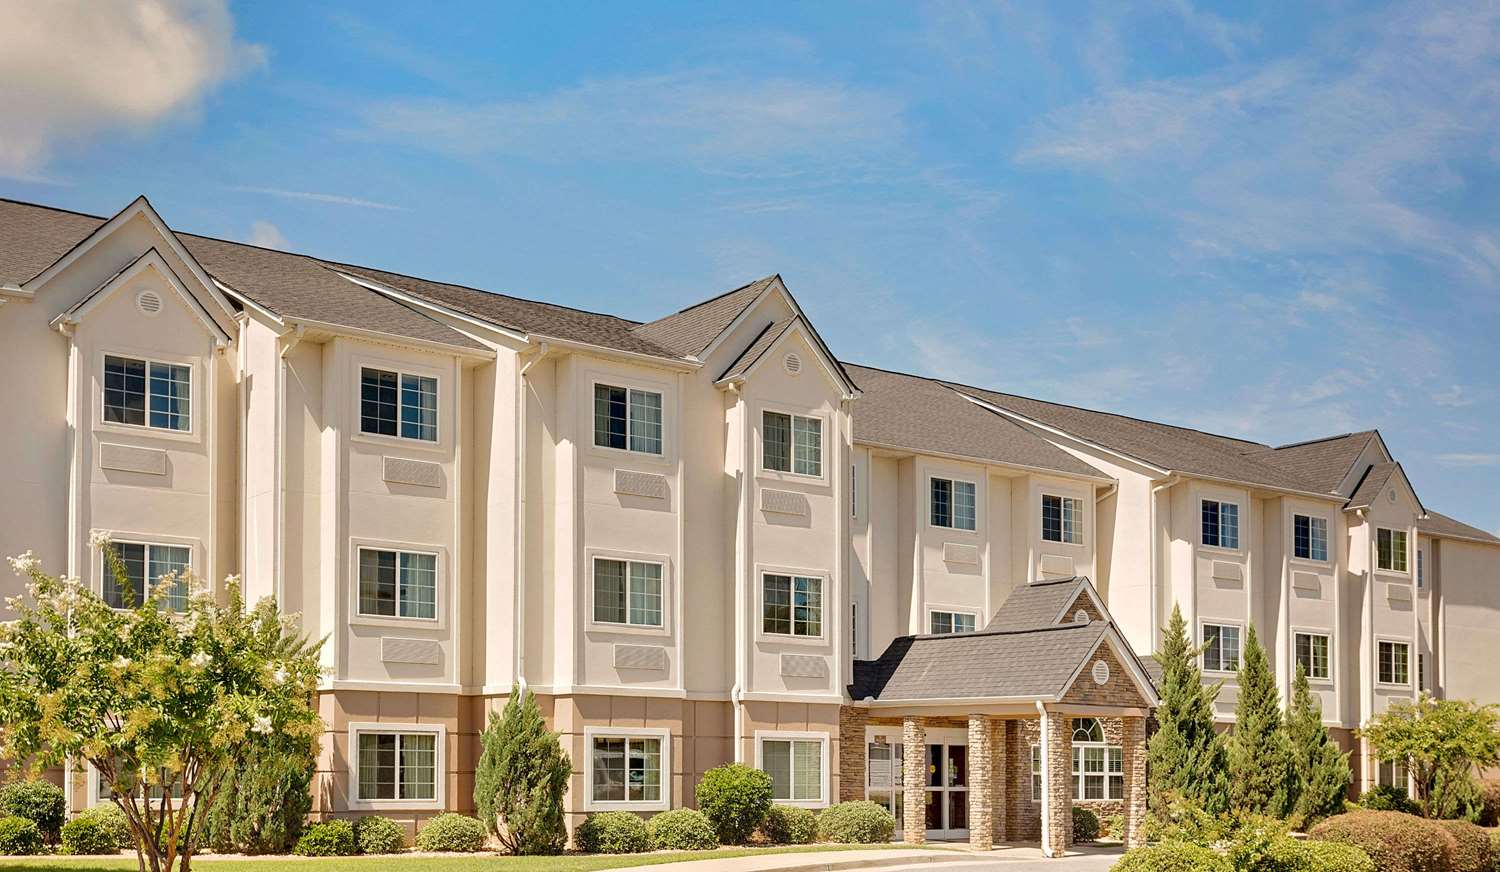 Exterior view - Microtel Inn & Suites by Wyndham Perry